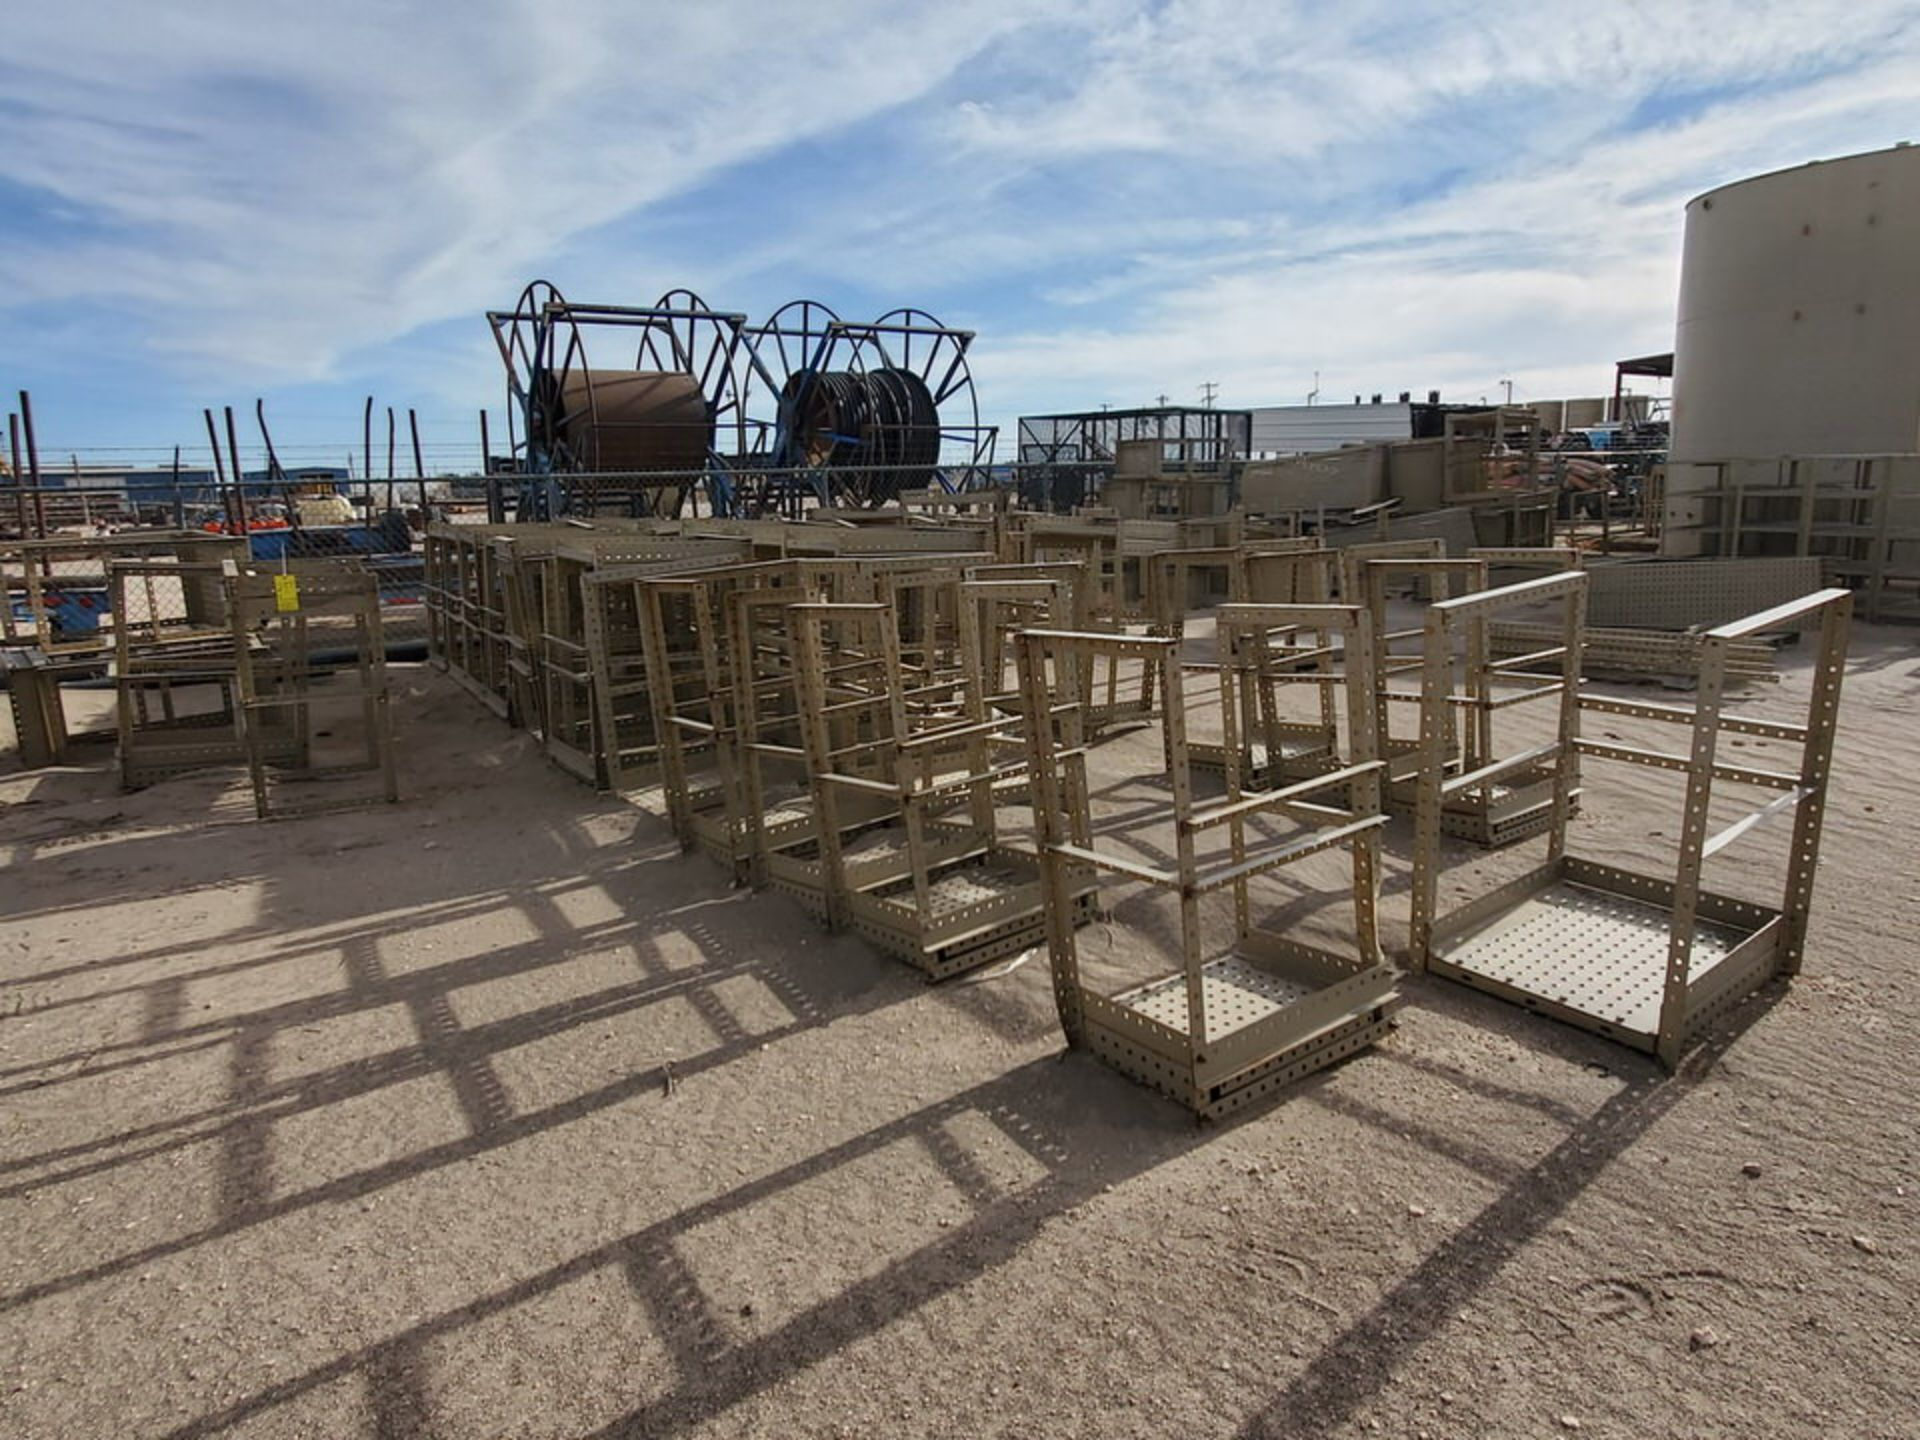 Disassembled Catwalk Sections - Image 2 of 12